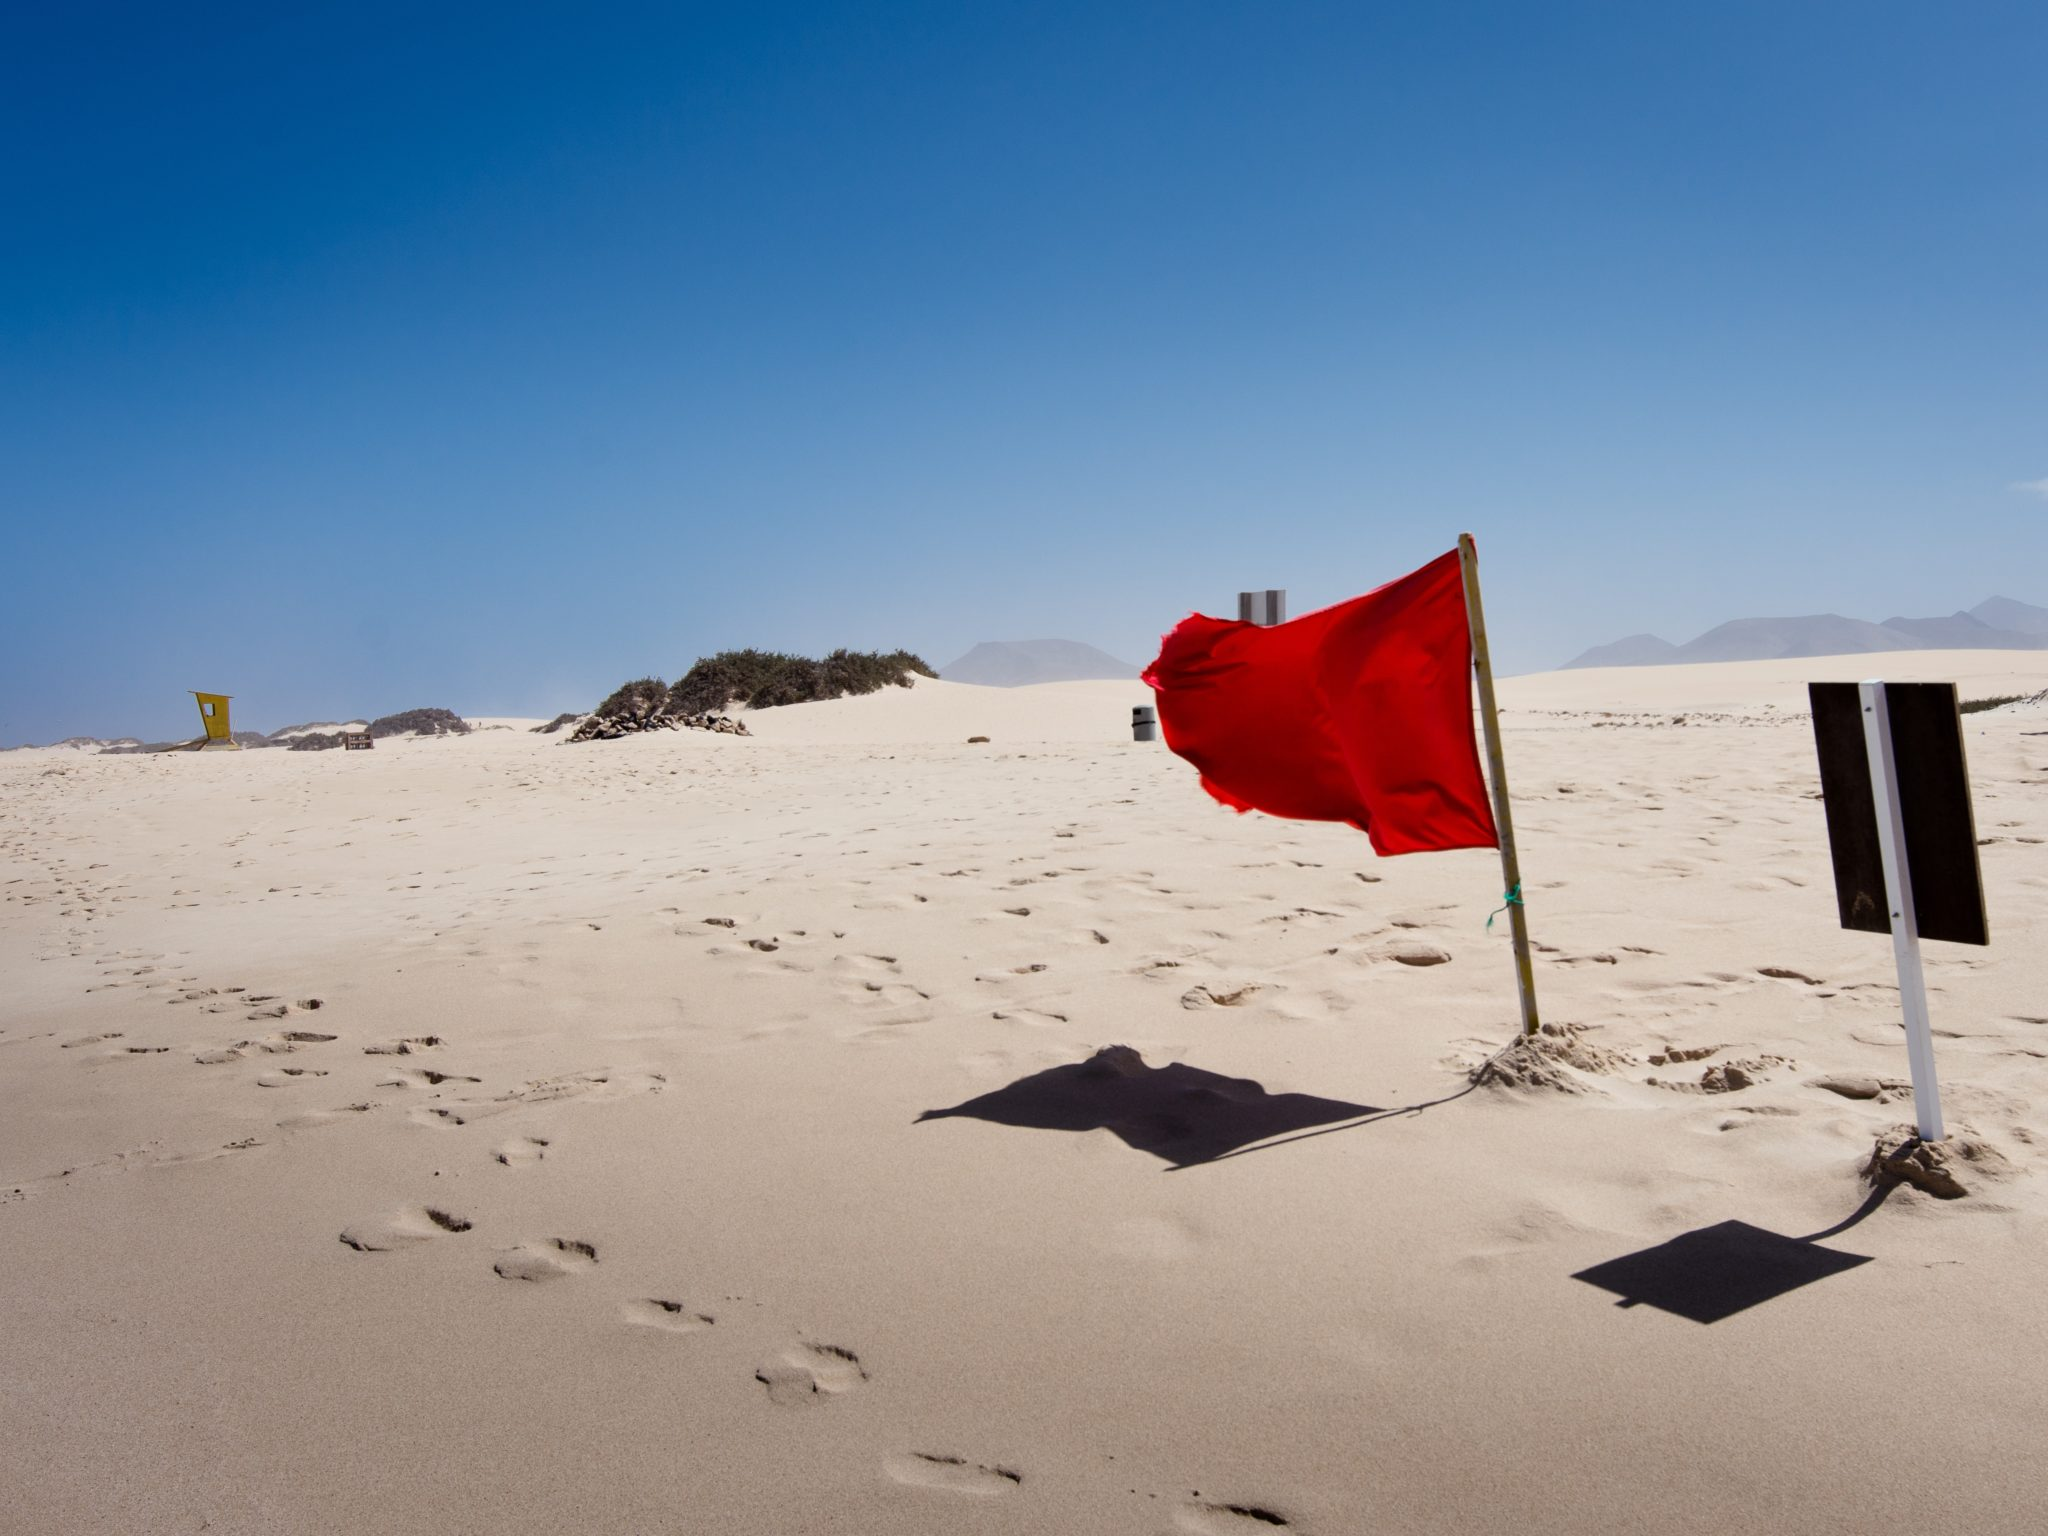 Red flag in the sand